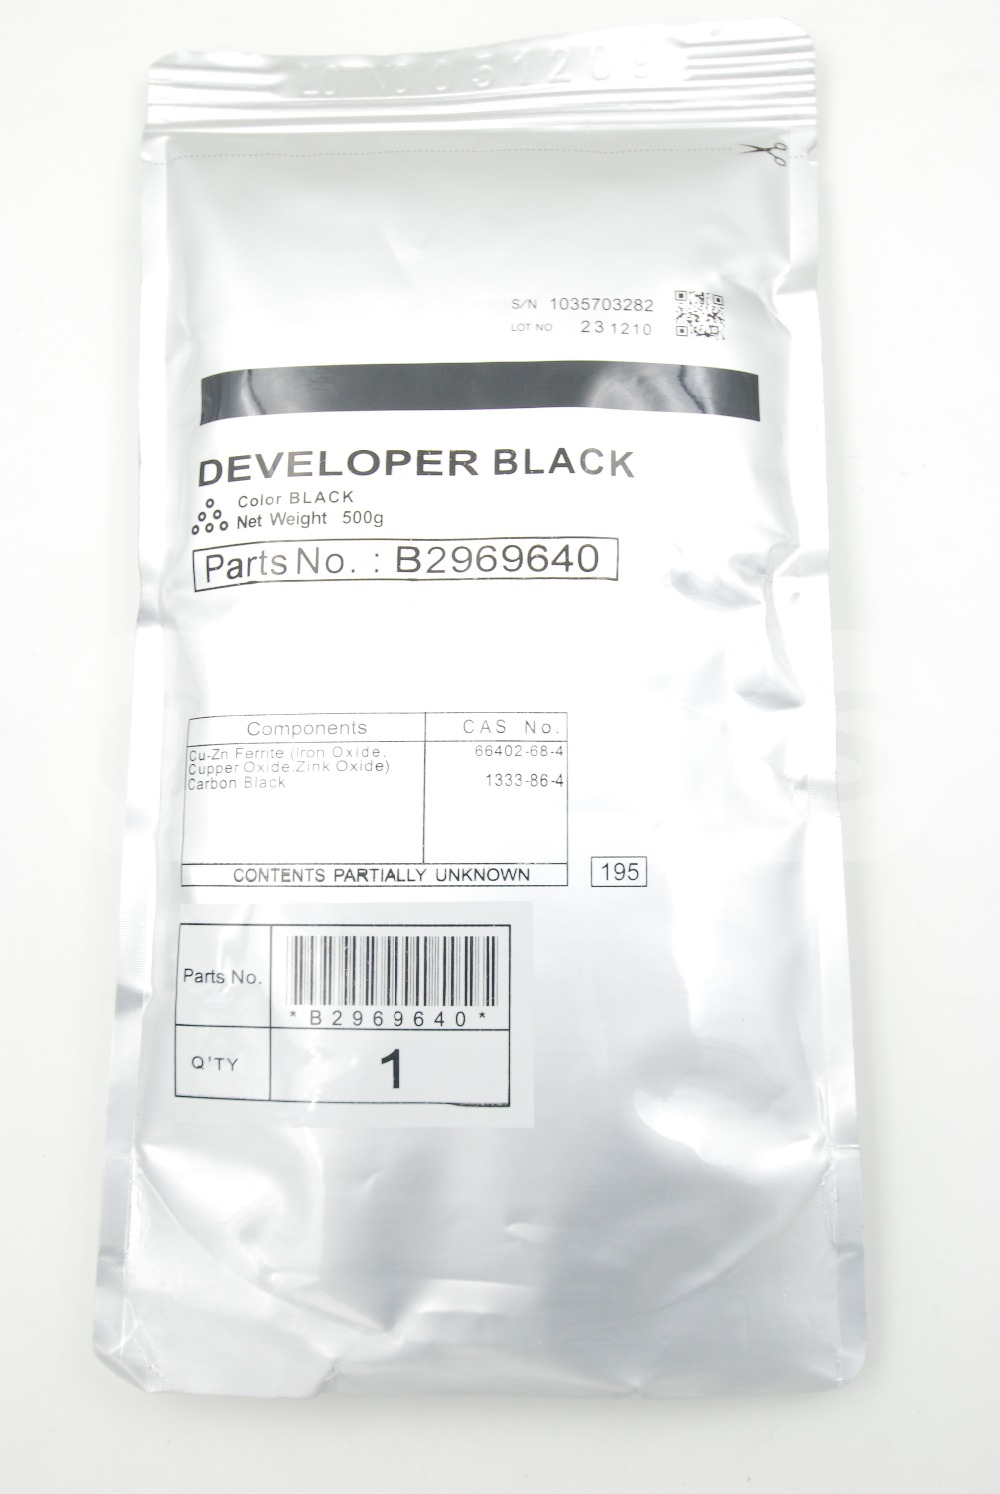 B296-9640 B2969640 Black Developer 500g for Ricoh Aficio MP 3500 4000 4001 4002 4500 5000 5001 5002 SP 8200 MP 4001 5001 LD 040